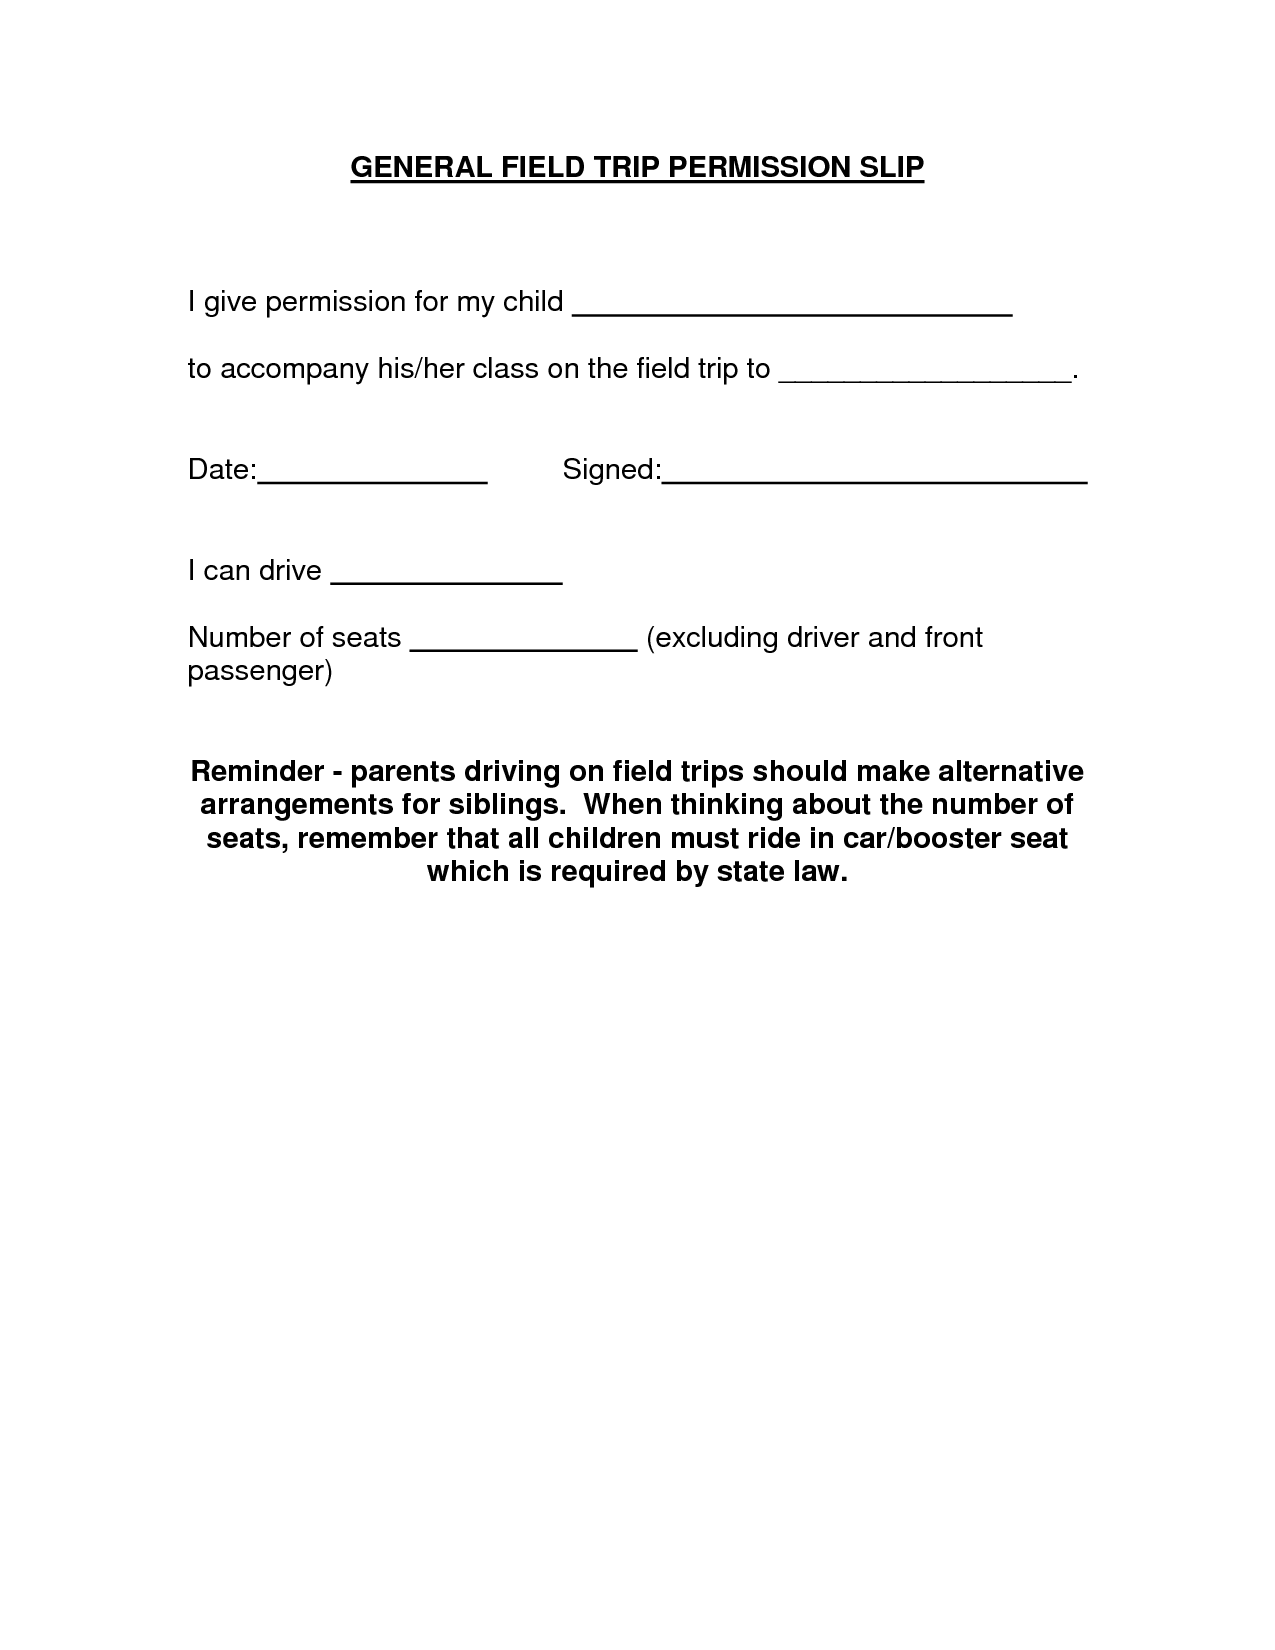 Permission Slip Field Trip   GENERAL